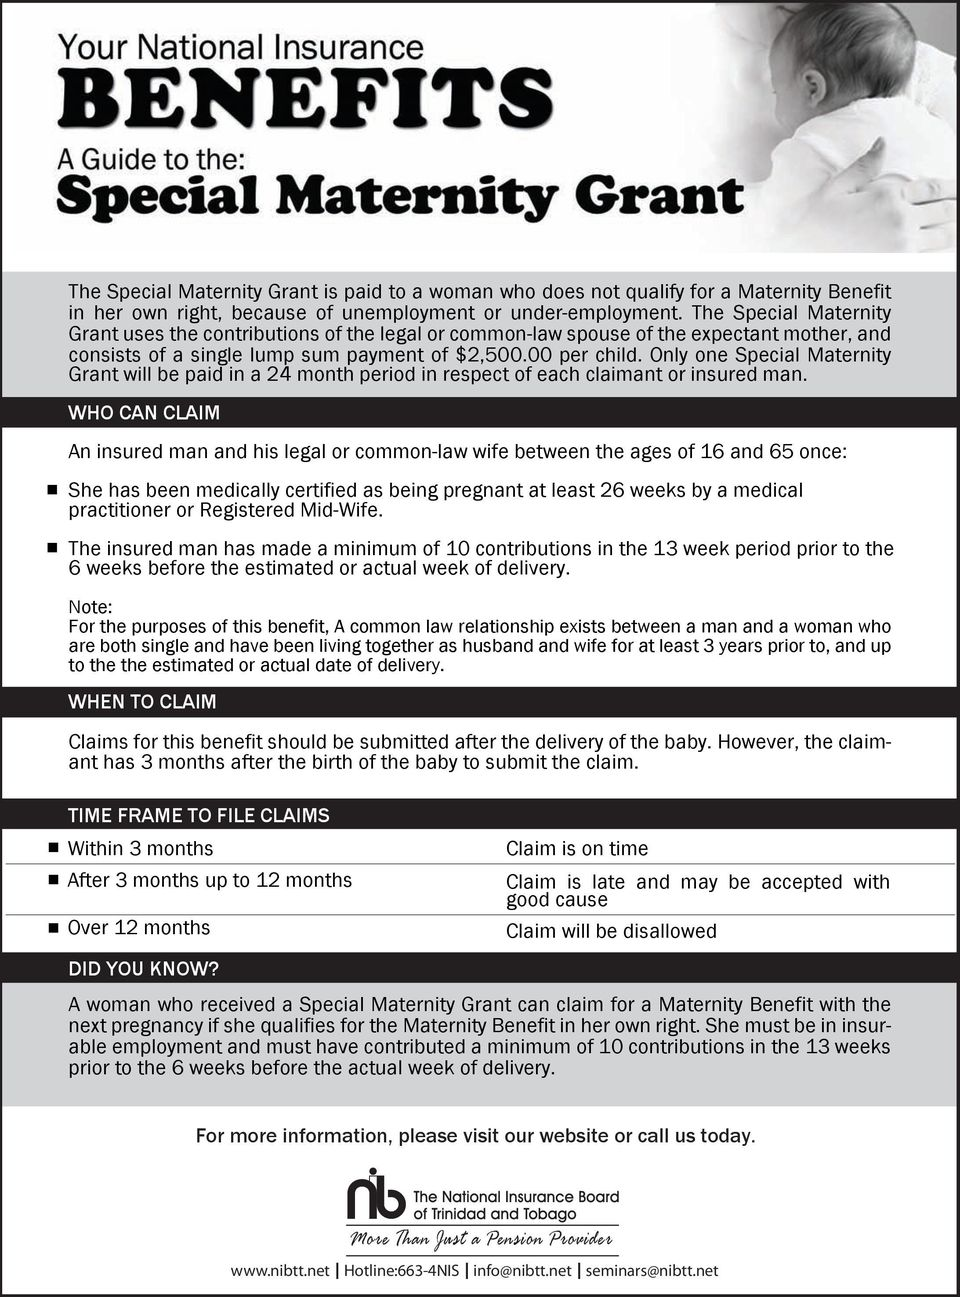 Only one Special Maternity Grant will be paid in a 24 month period in respect of each claimant or insured man.